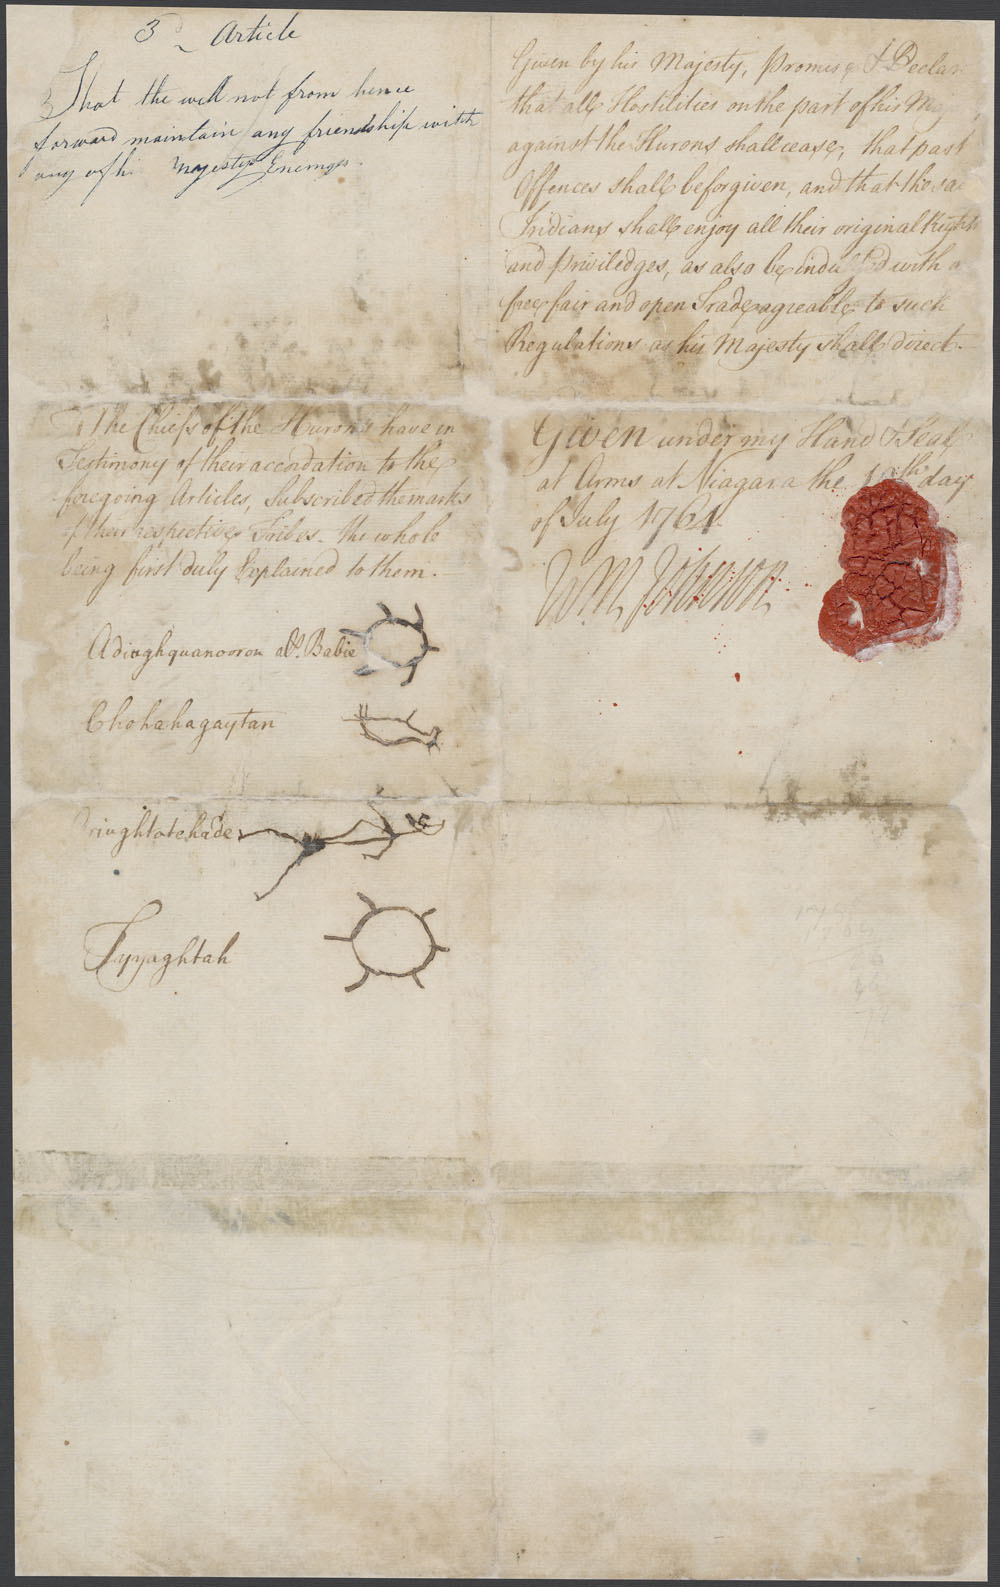 Treaty of peace and friendship between Sir William Johnson and the Hurons of the Detroit [textual record]. (item 5)